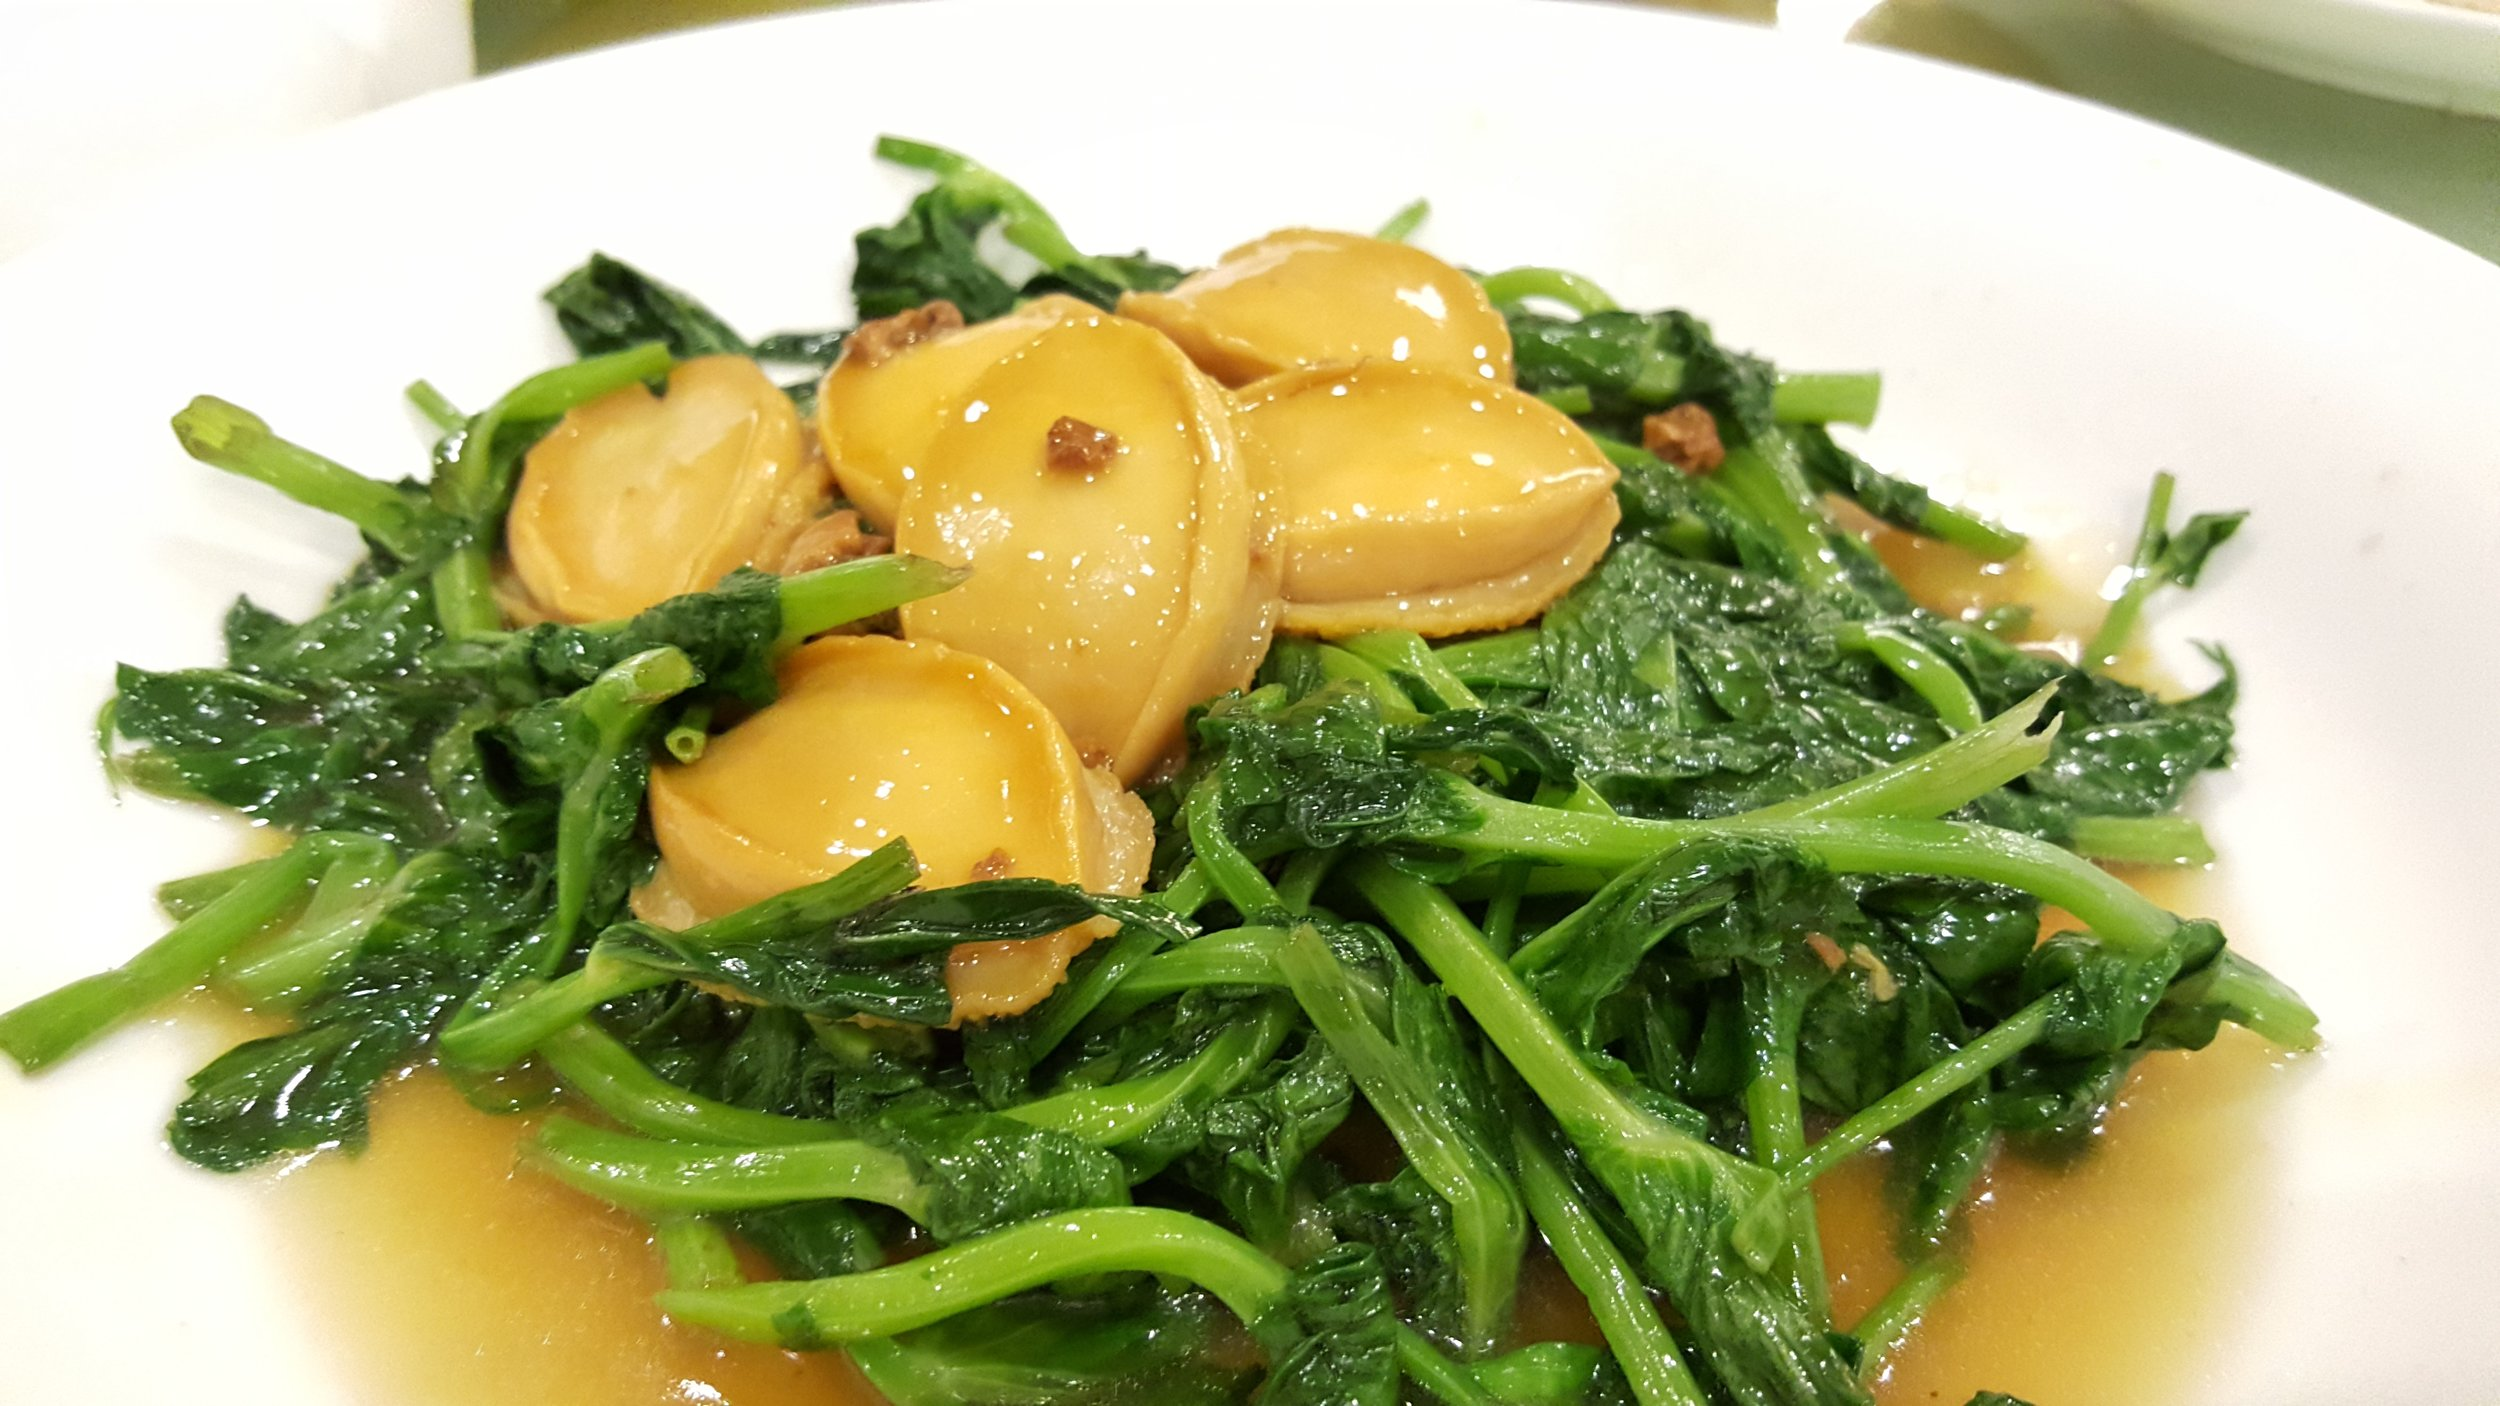 Braised Whole Abalone & Greens